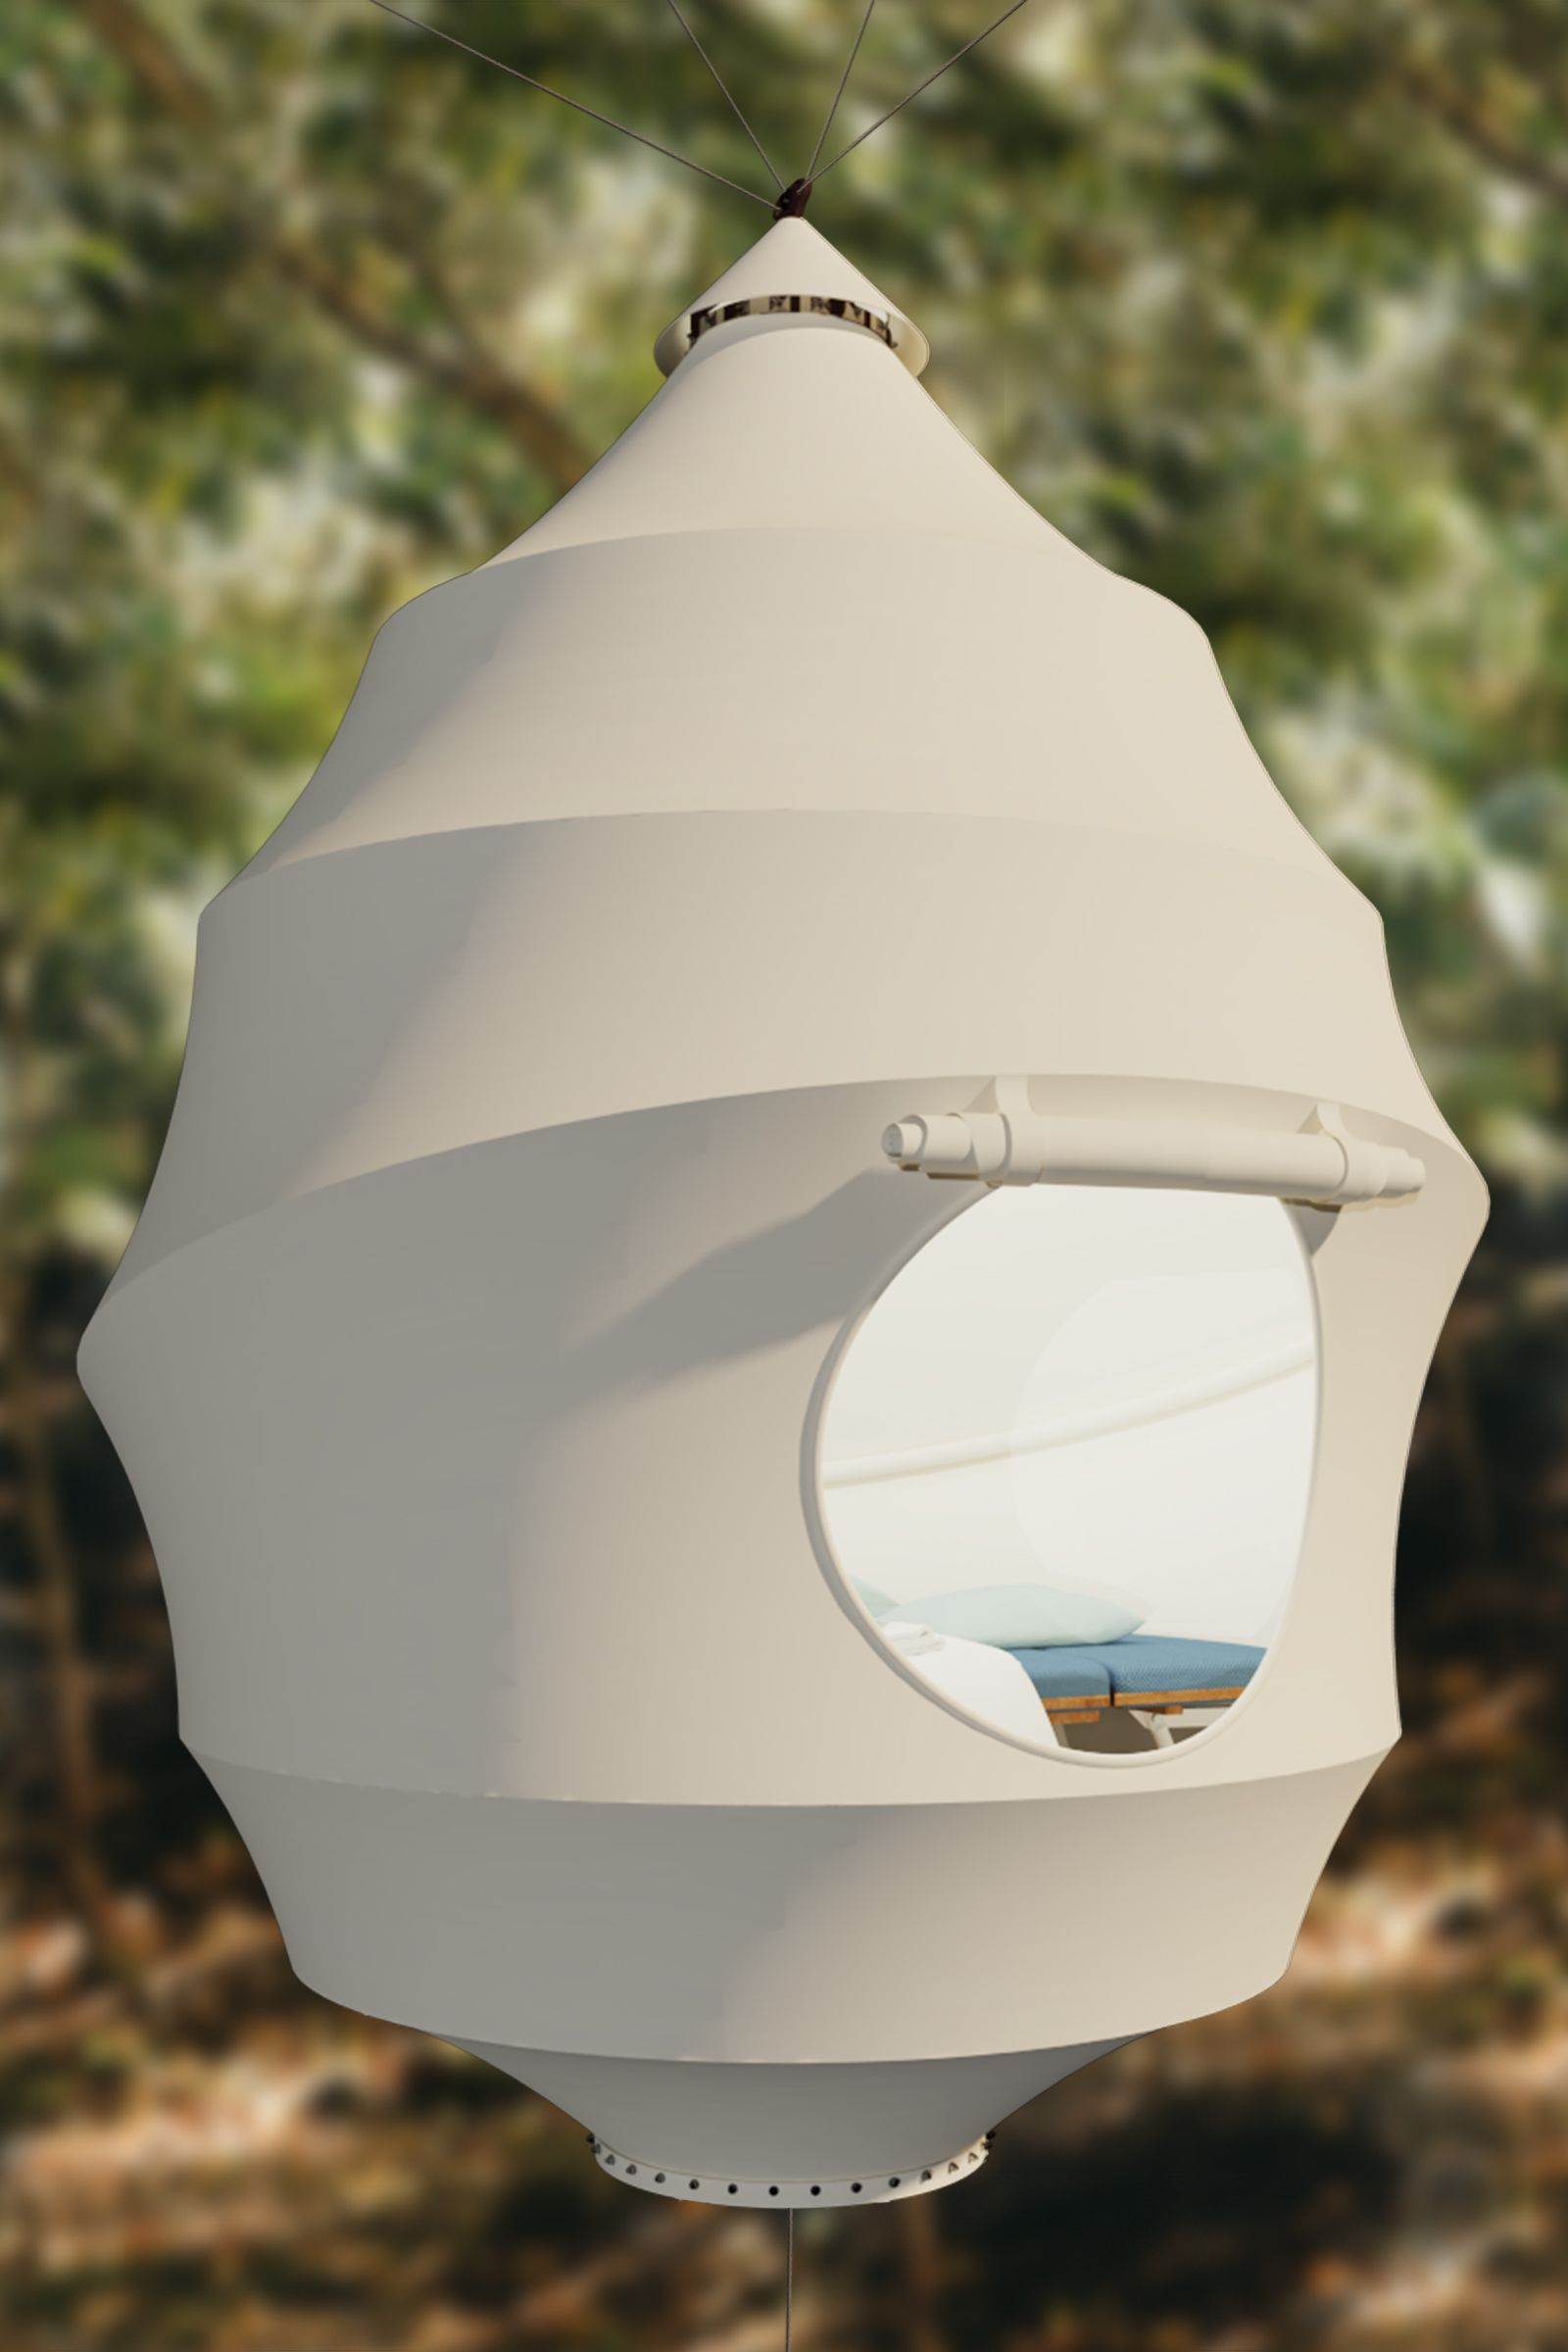 seedpod, picnic pod, sleeping pod, pod tent, seed tent, suspended tent